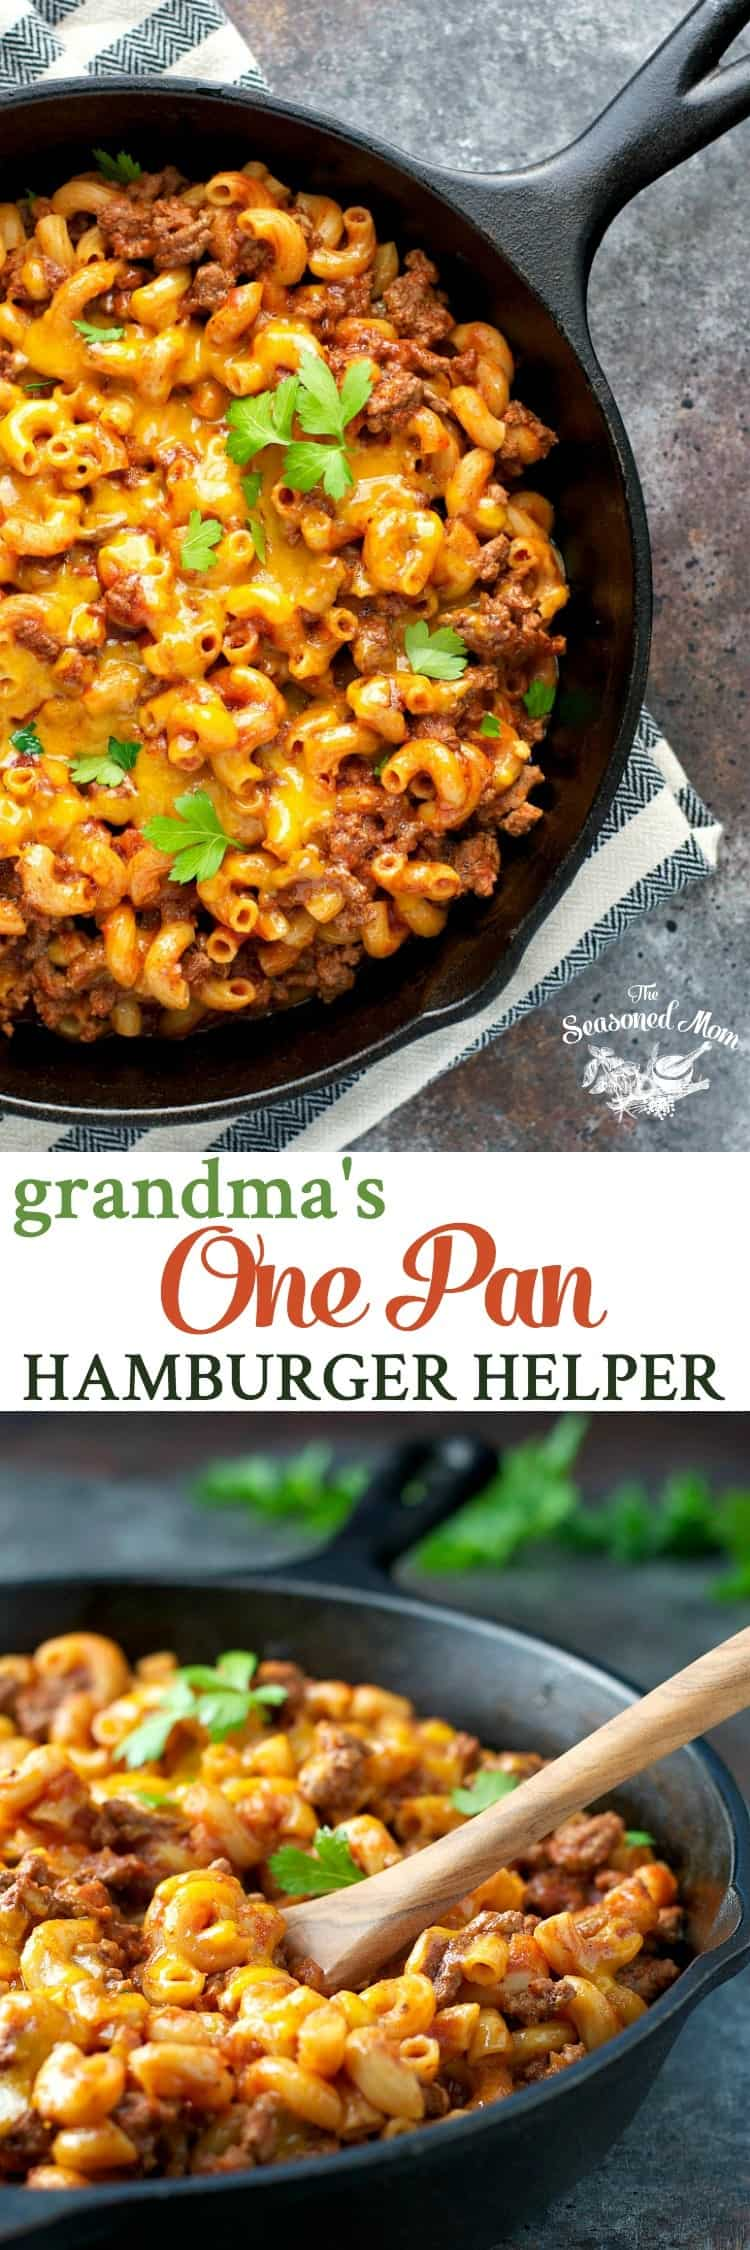 Just 5 minutes of prep for a healthy and easy dinner that cooks entirely in one pan: Grandma's Hamburger Helper!